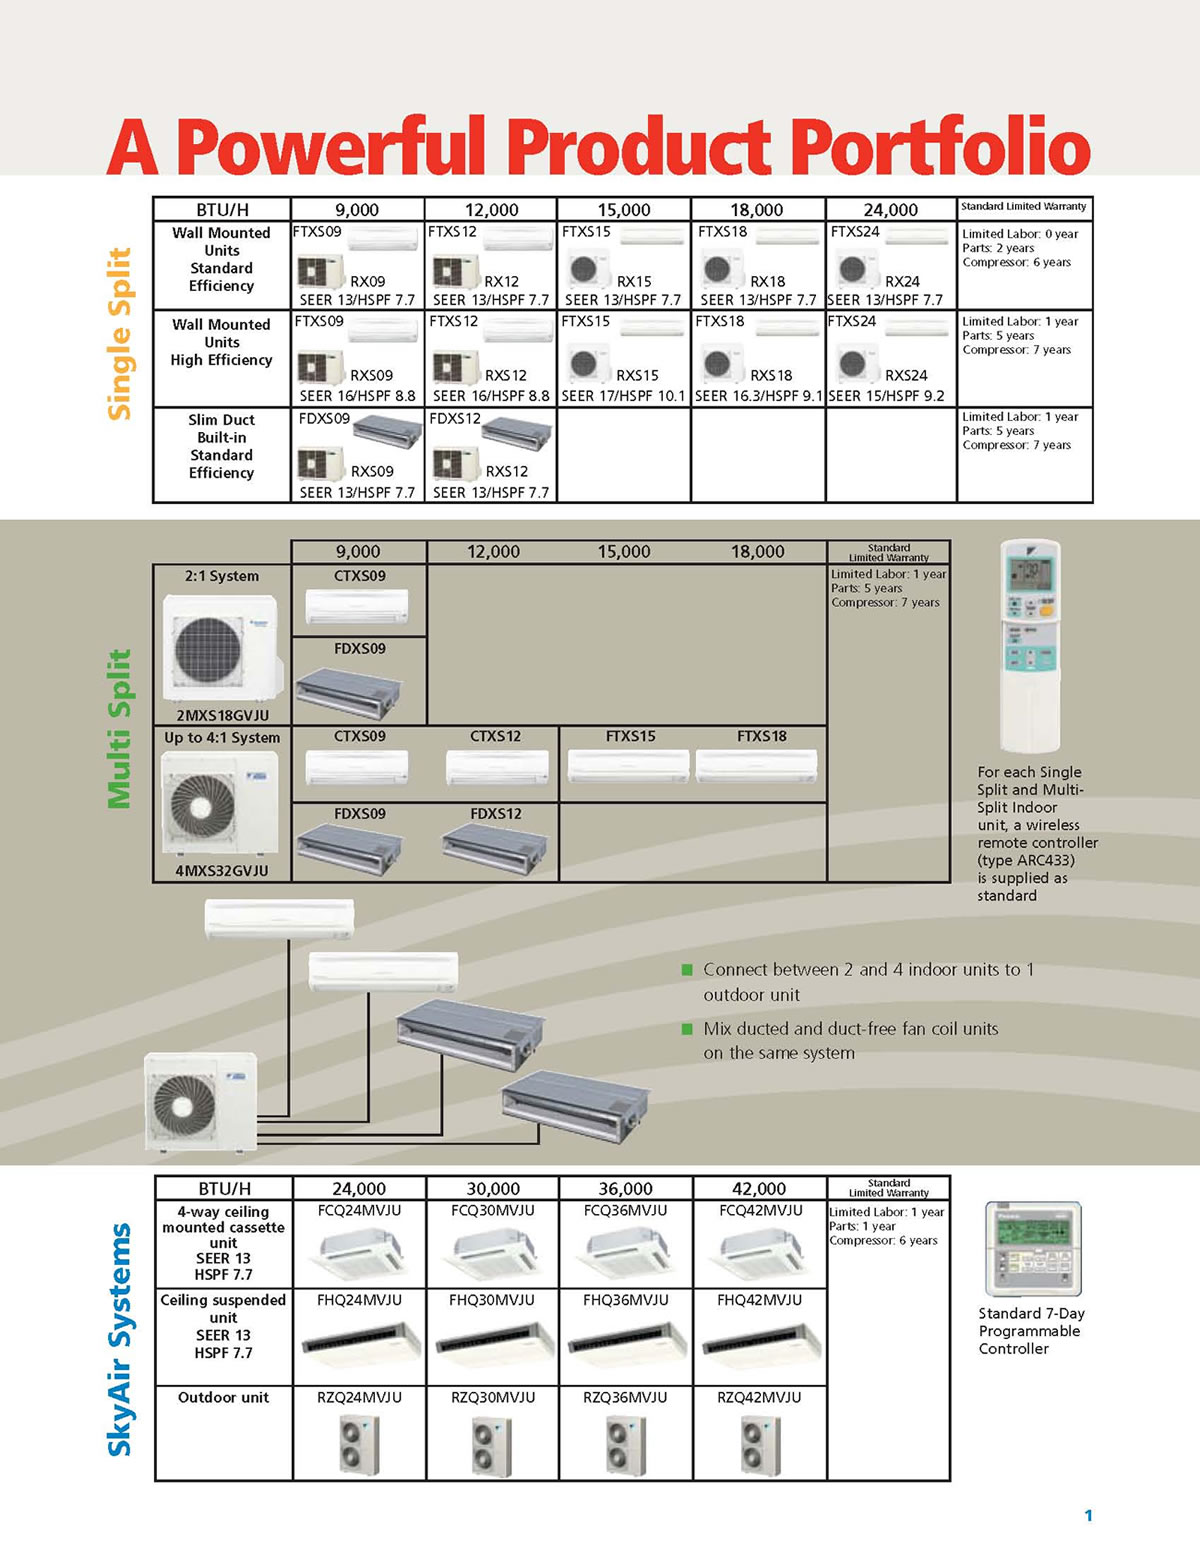 Mitsubishi City Multi Wiring Diagram - Residential Electrical Symbols •